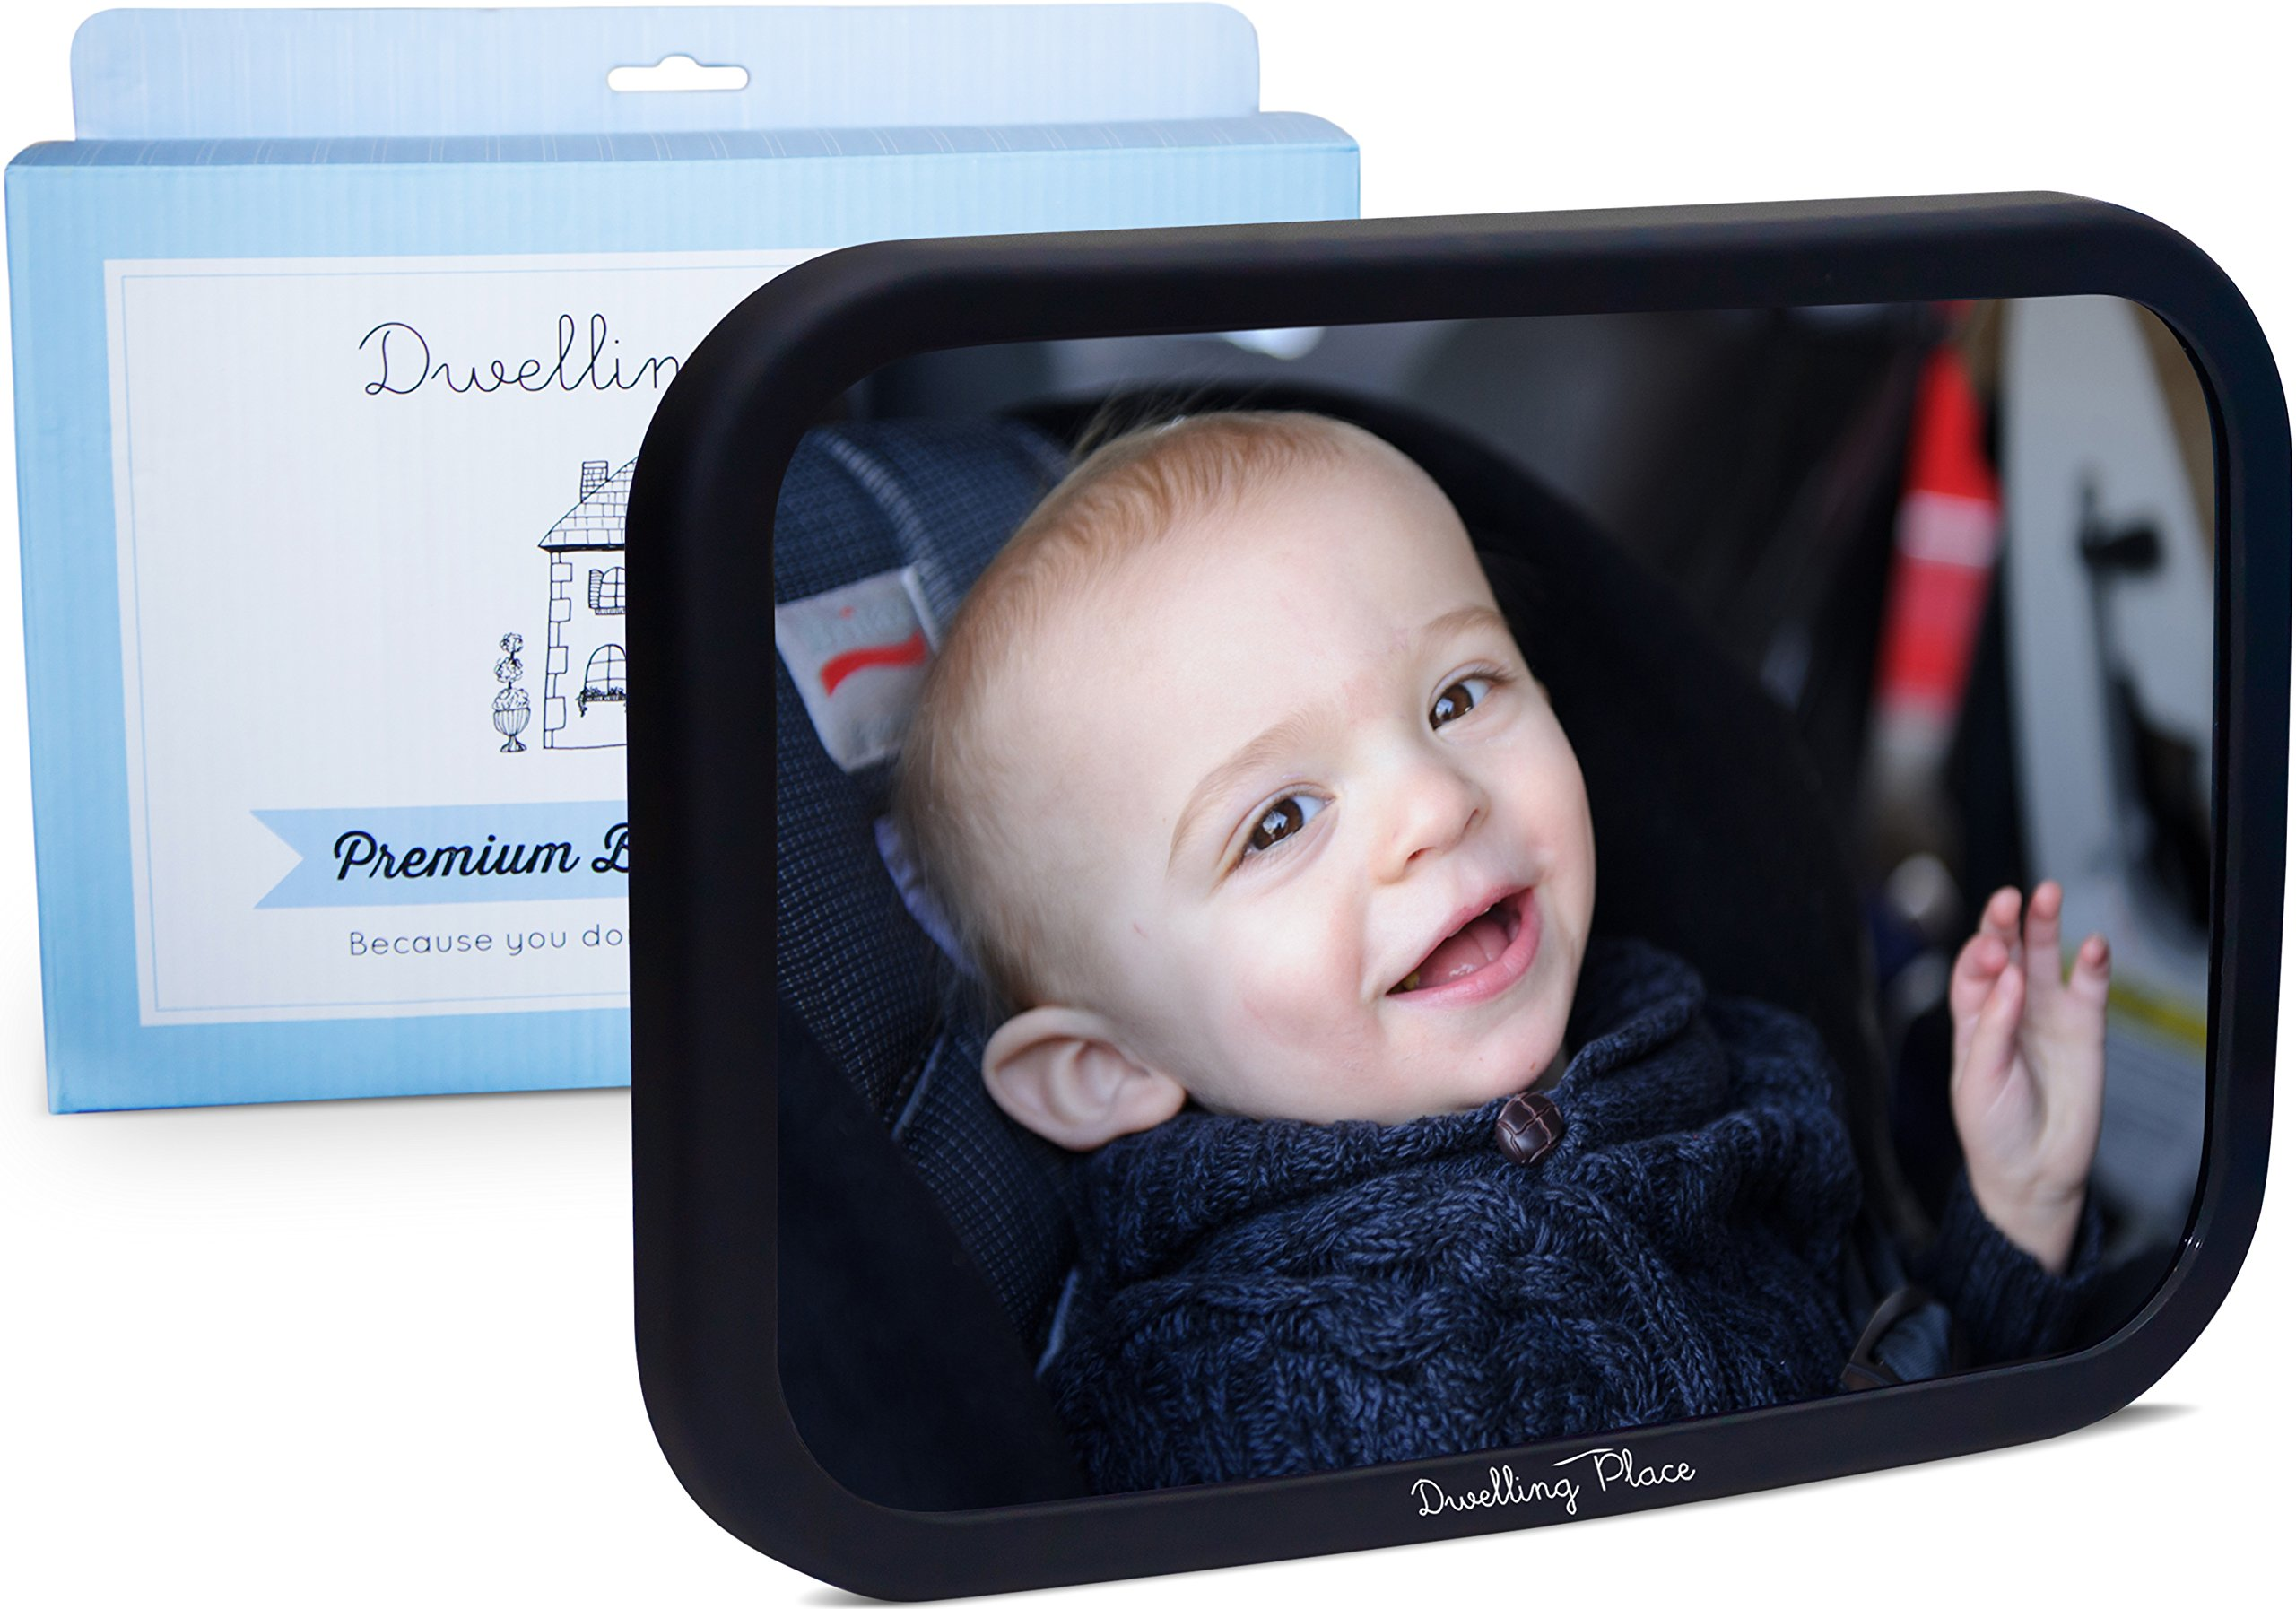 Dwelling Place #1 Premium Back Seat Mirror - Clear Reflection & Shatterproof | Monitor your Rear Facing Infant in Car Seat Carrier | Add to your Baby Registry or Buy for a Useful Shower Gift by Dwelling Place